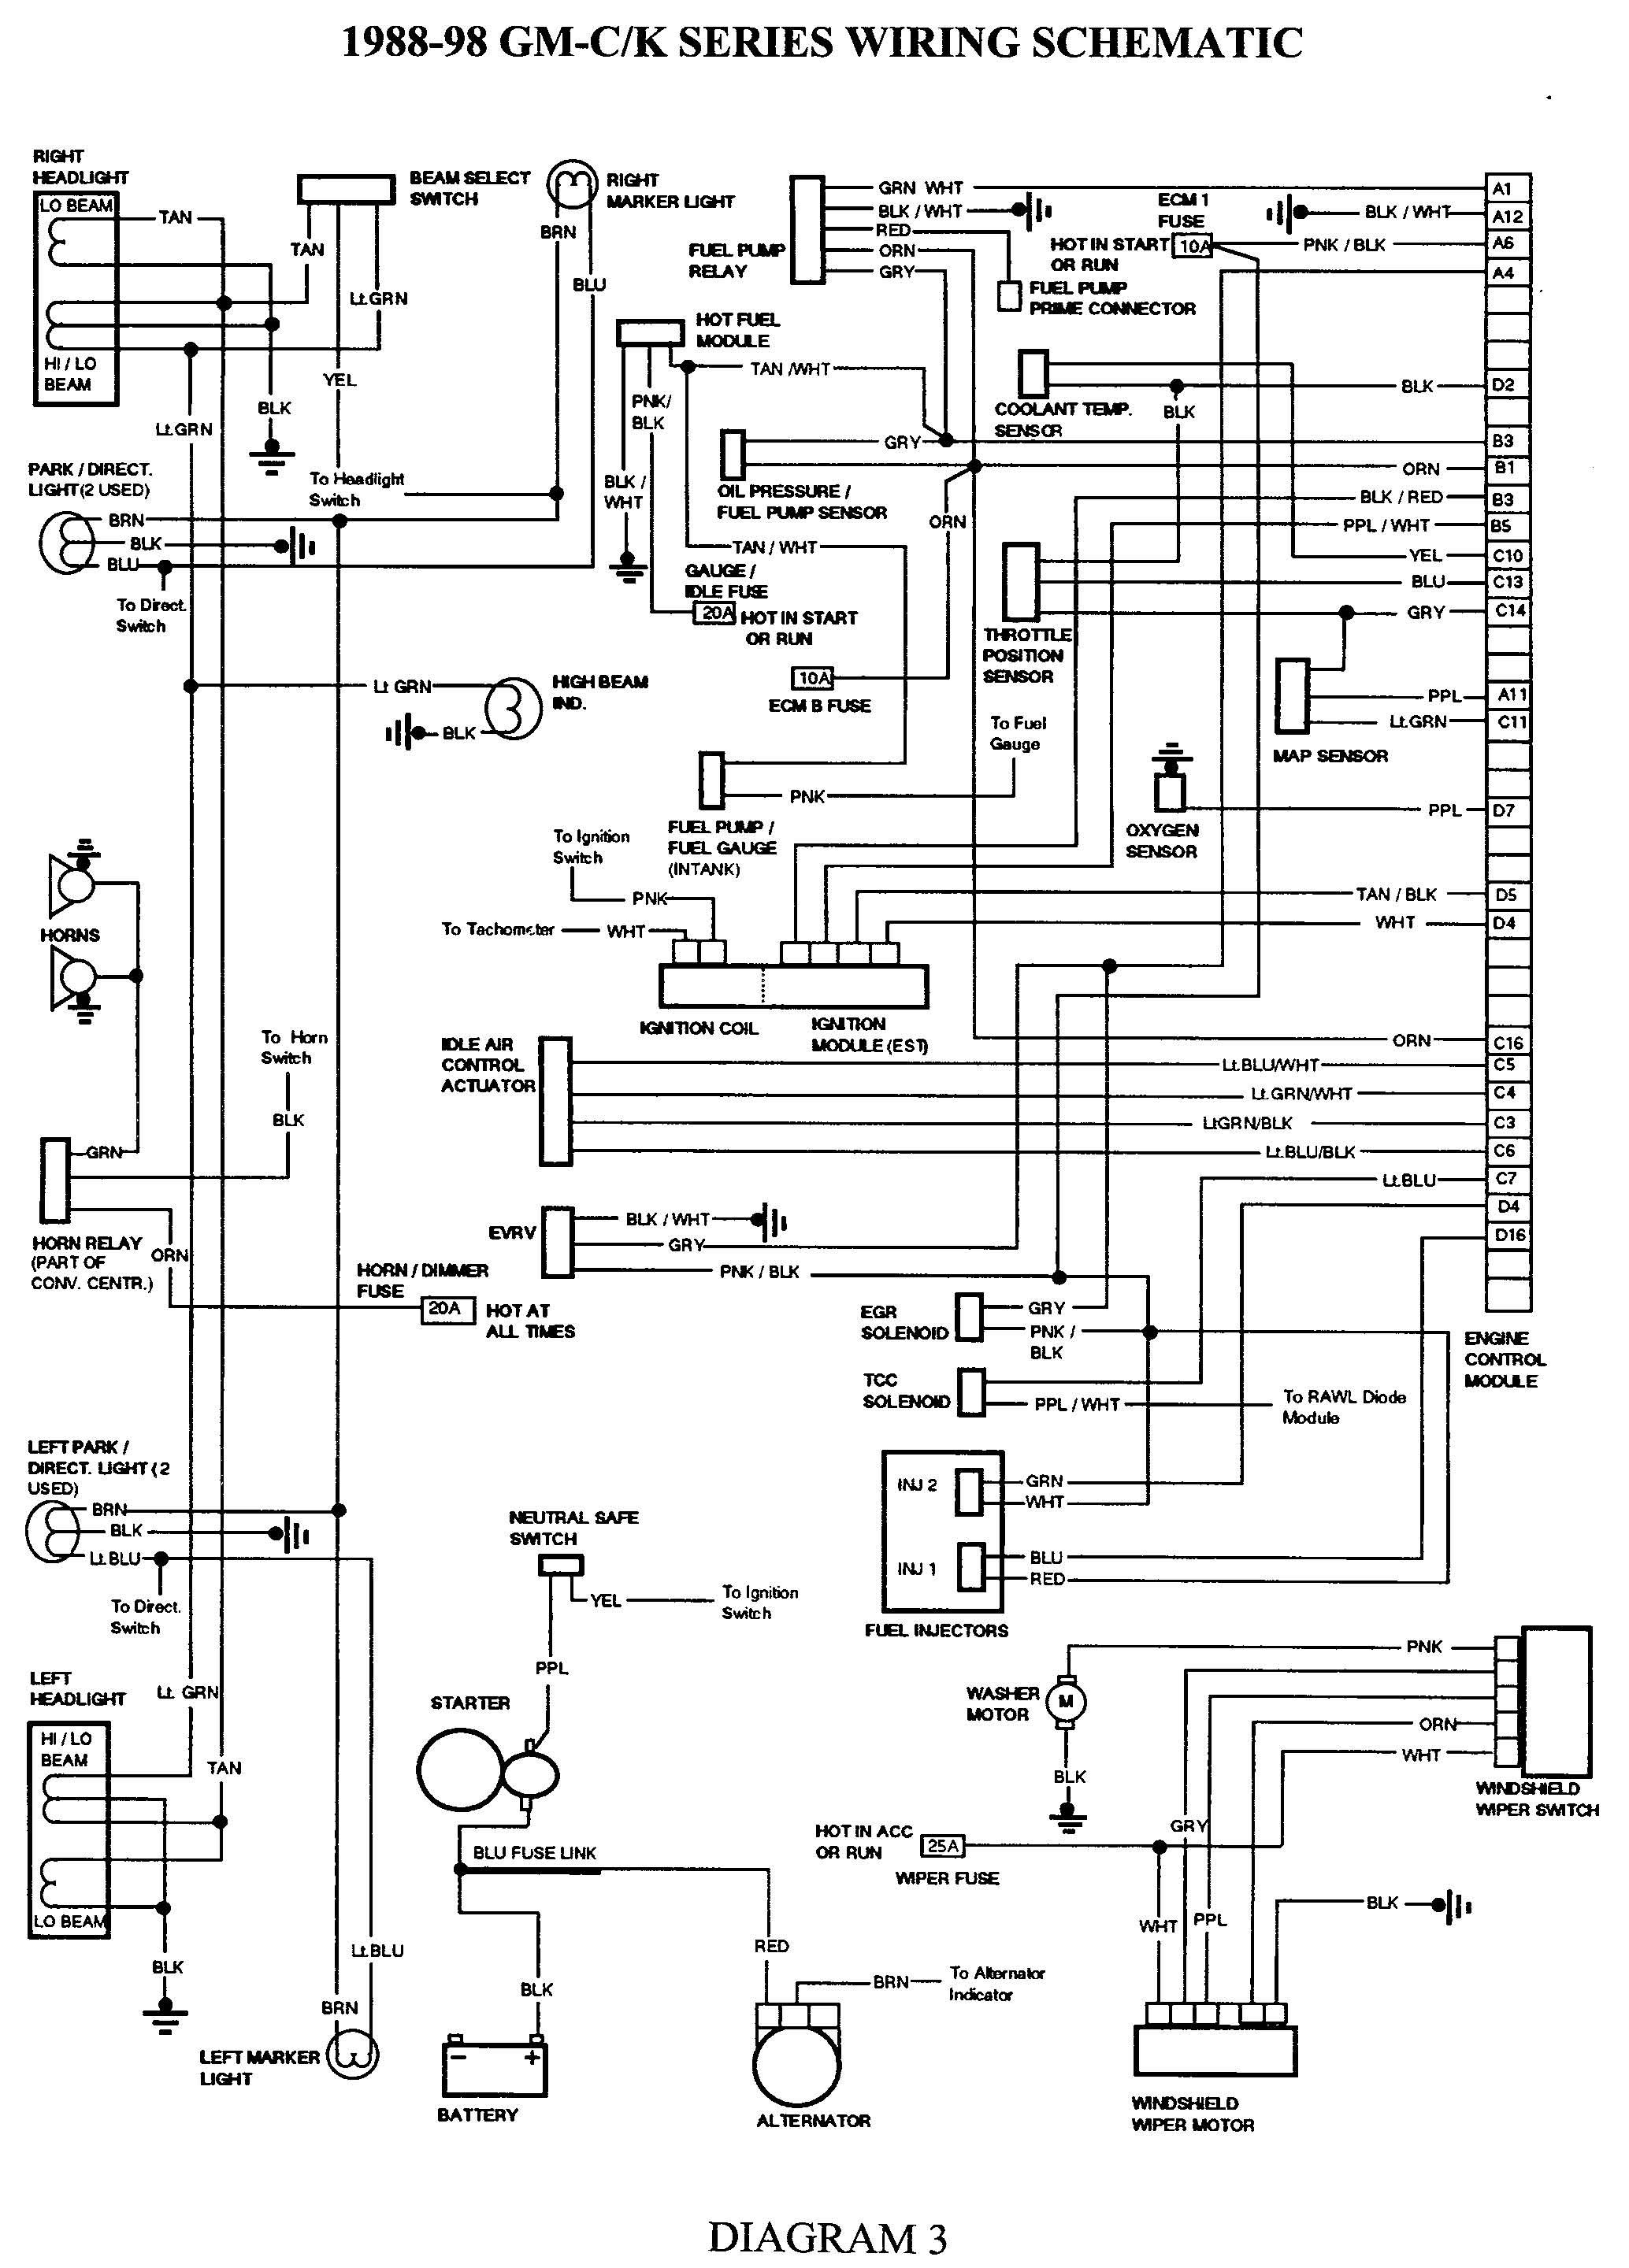 gmc truck wiring diagrams on gm wiring harness diagram 88 98 kc gmc truck  wiring diagrams